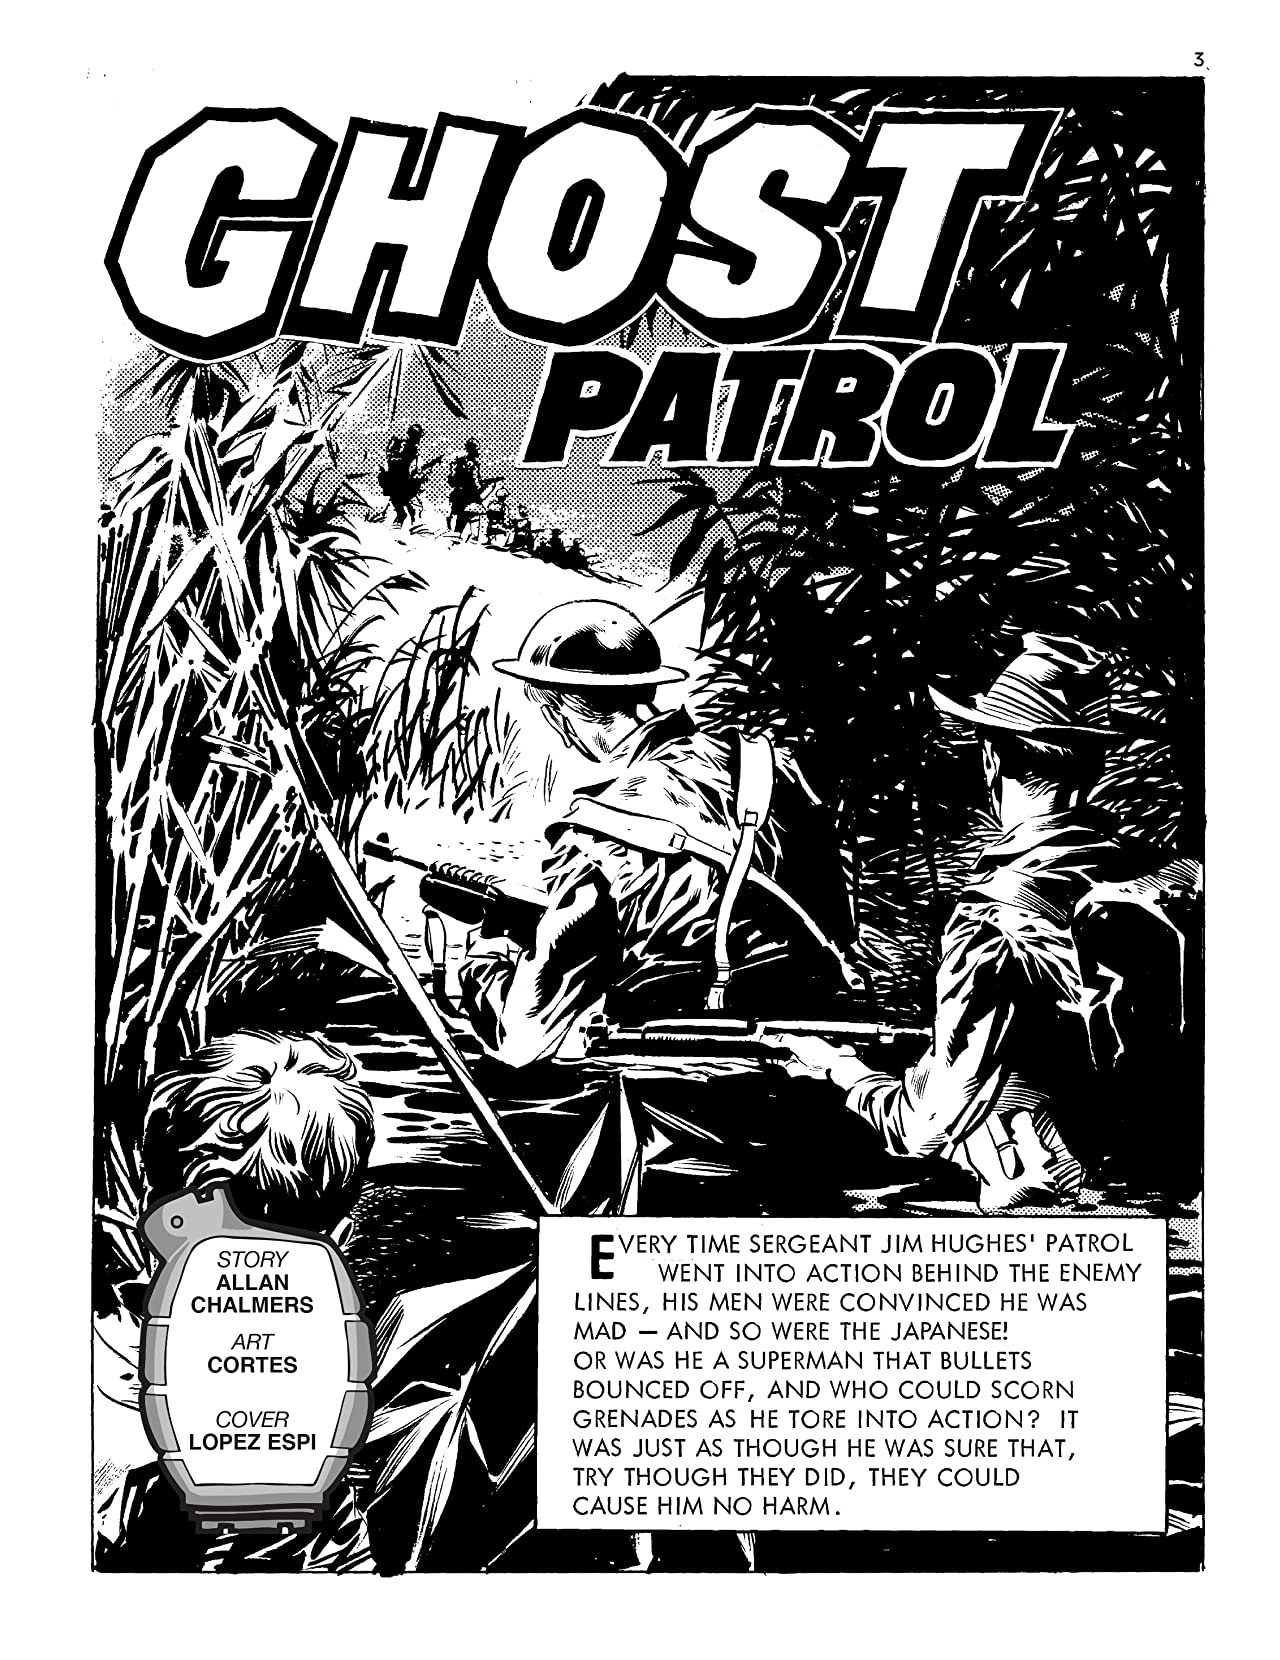 Commando #4999: Ghost Patrol